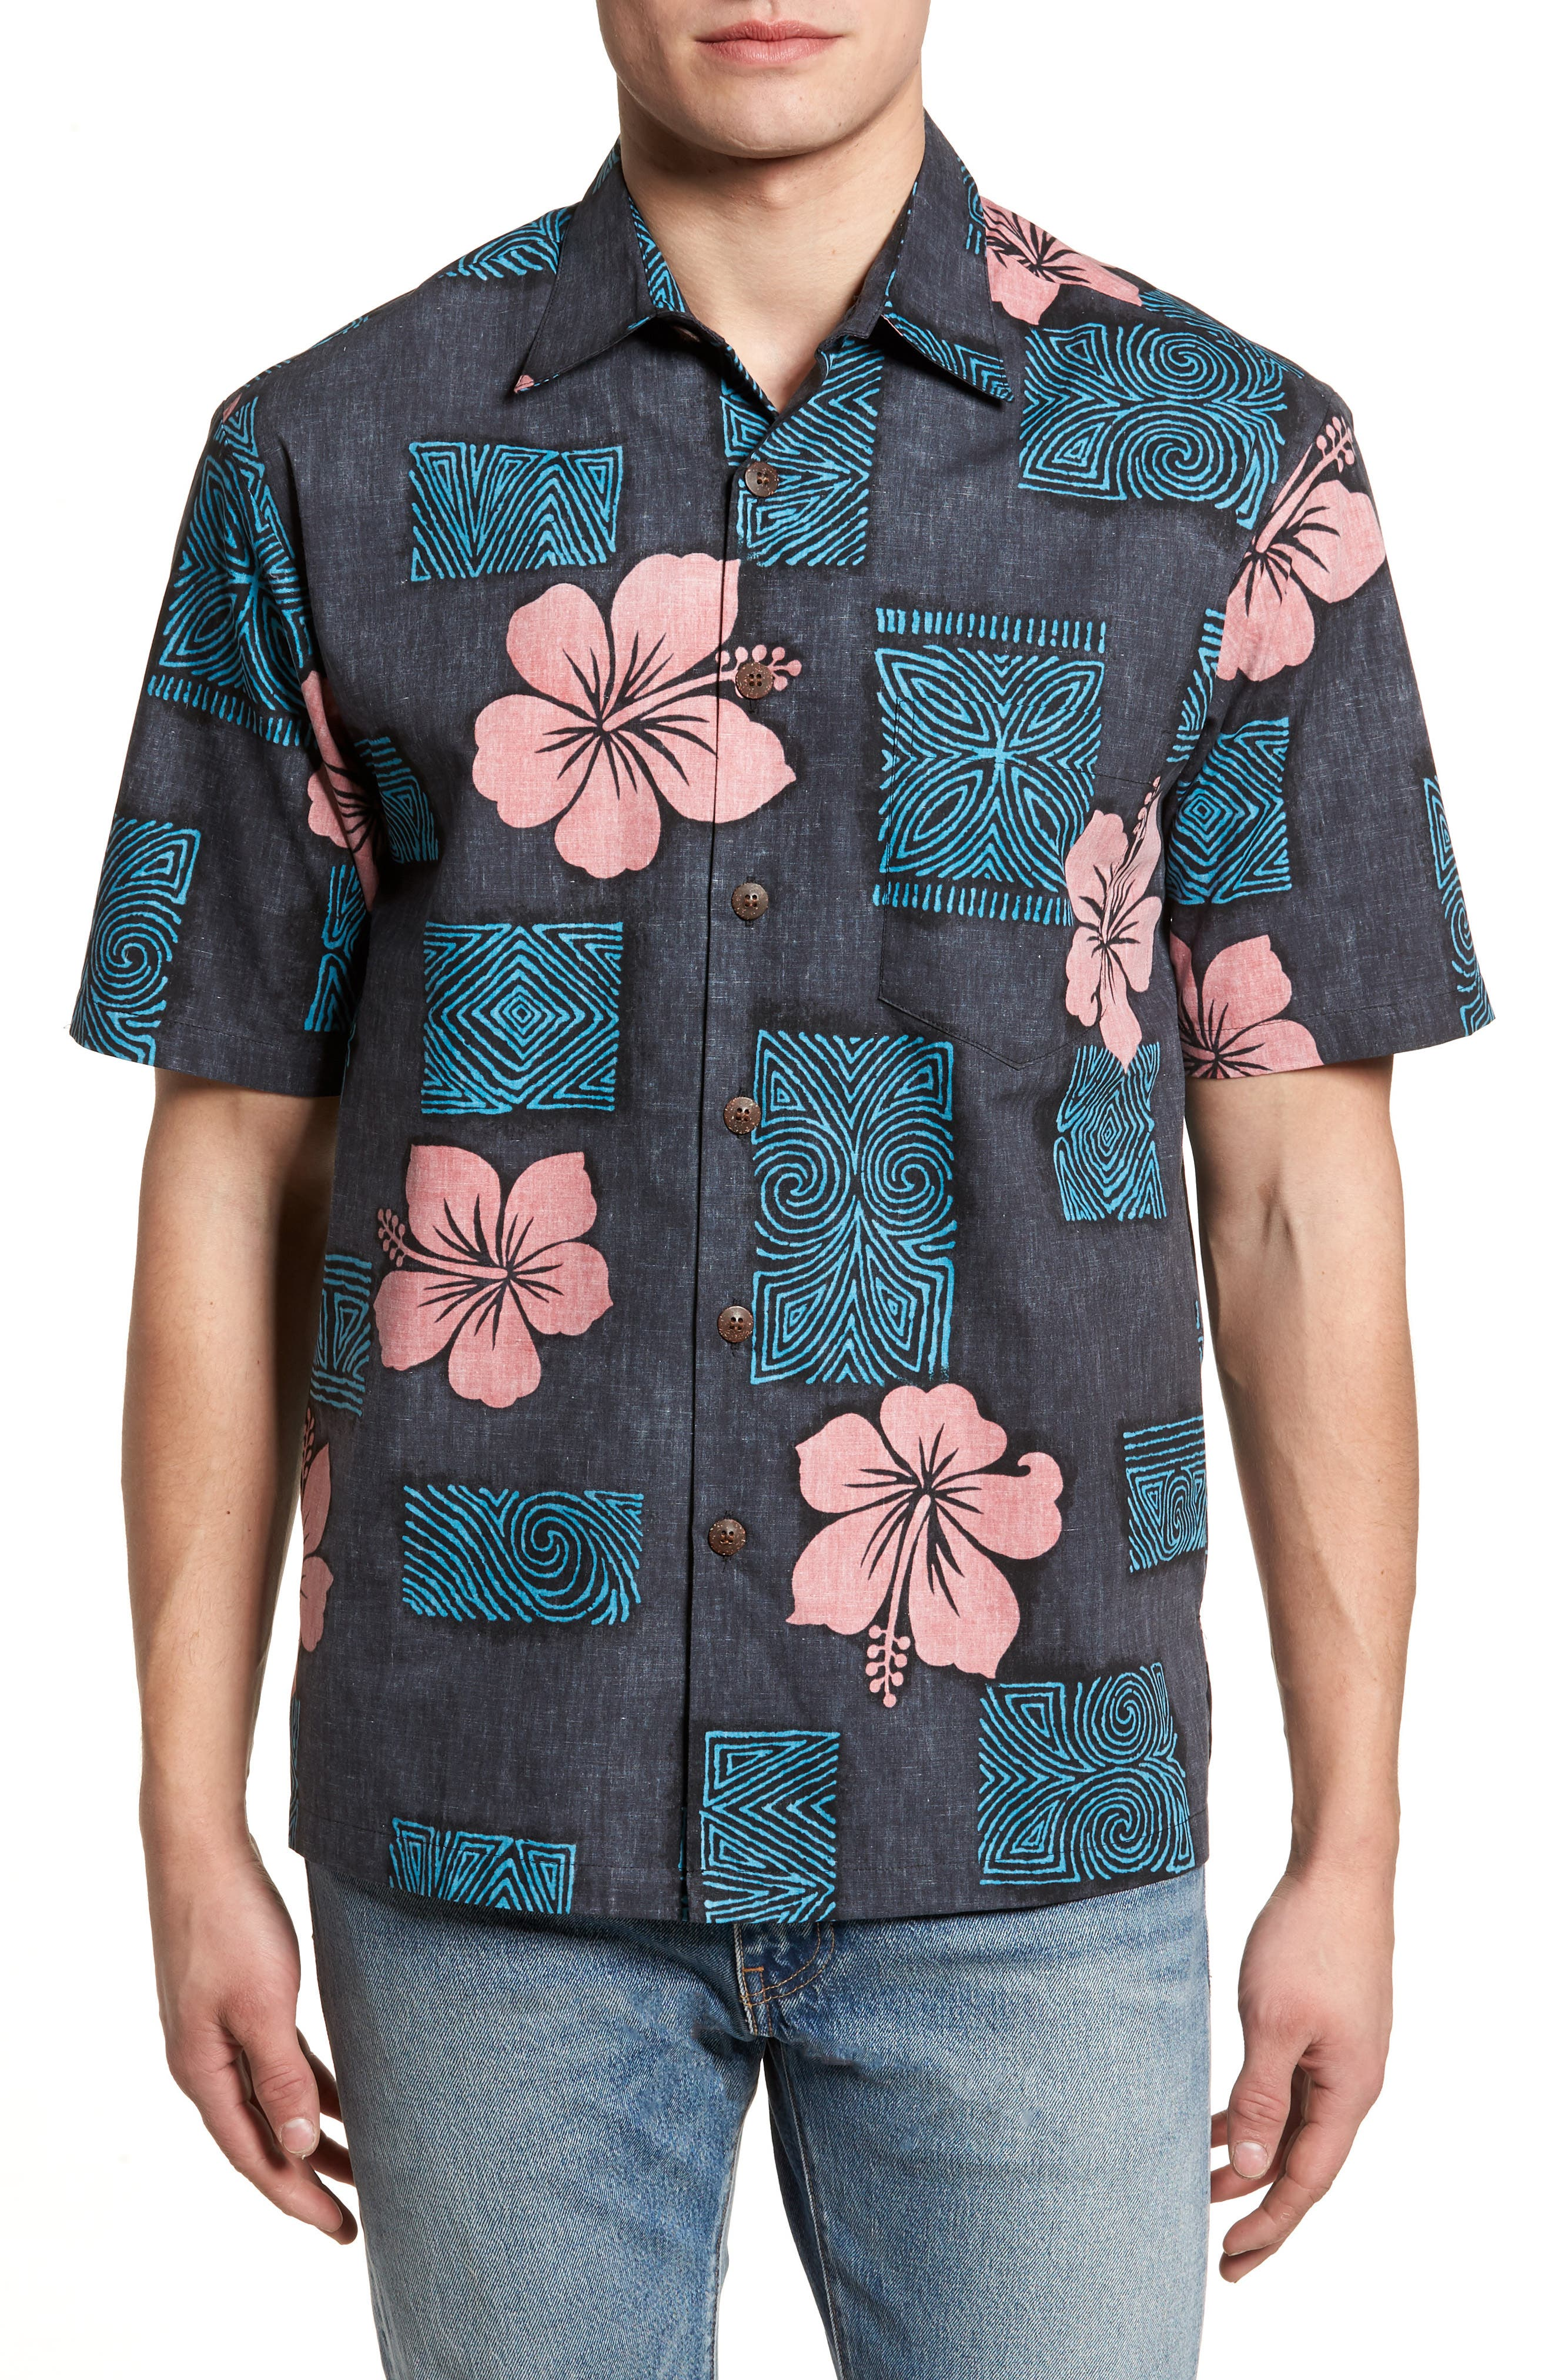 Tiki Room Standard Fit Camp Shirt,                             Main thumbnail 1, color,                             001